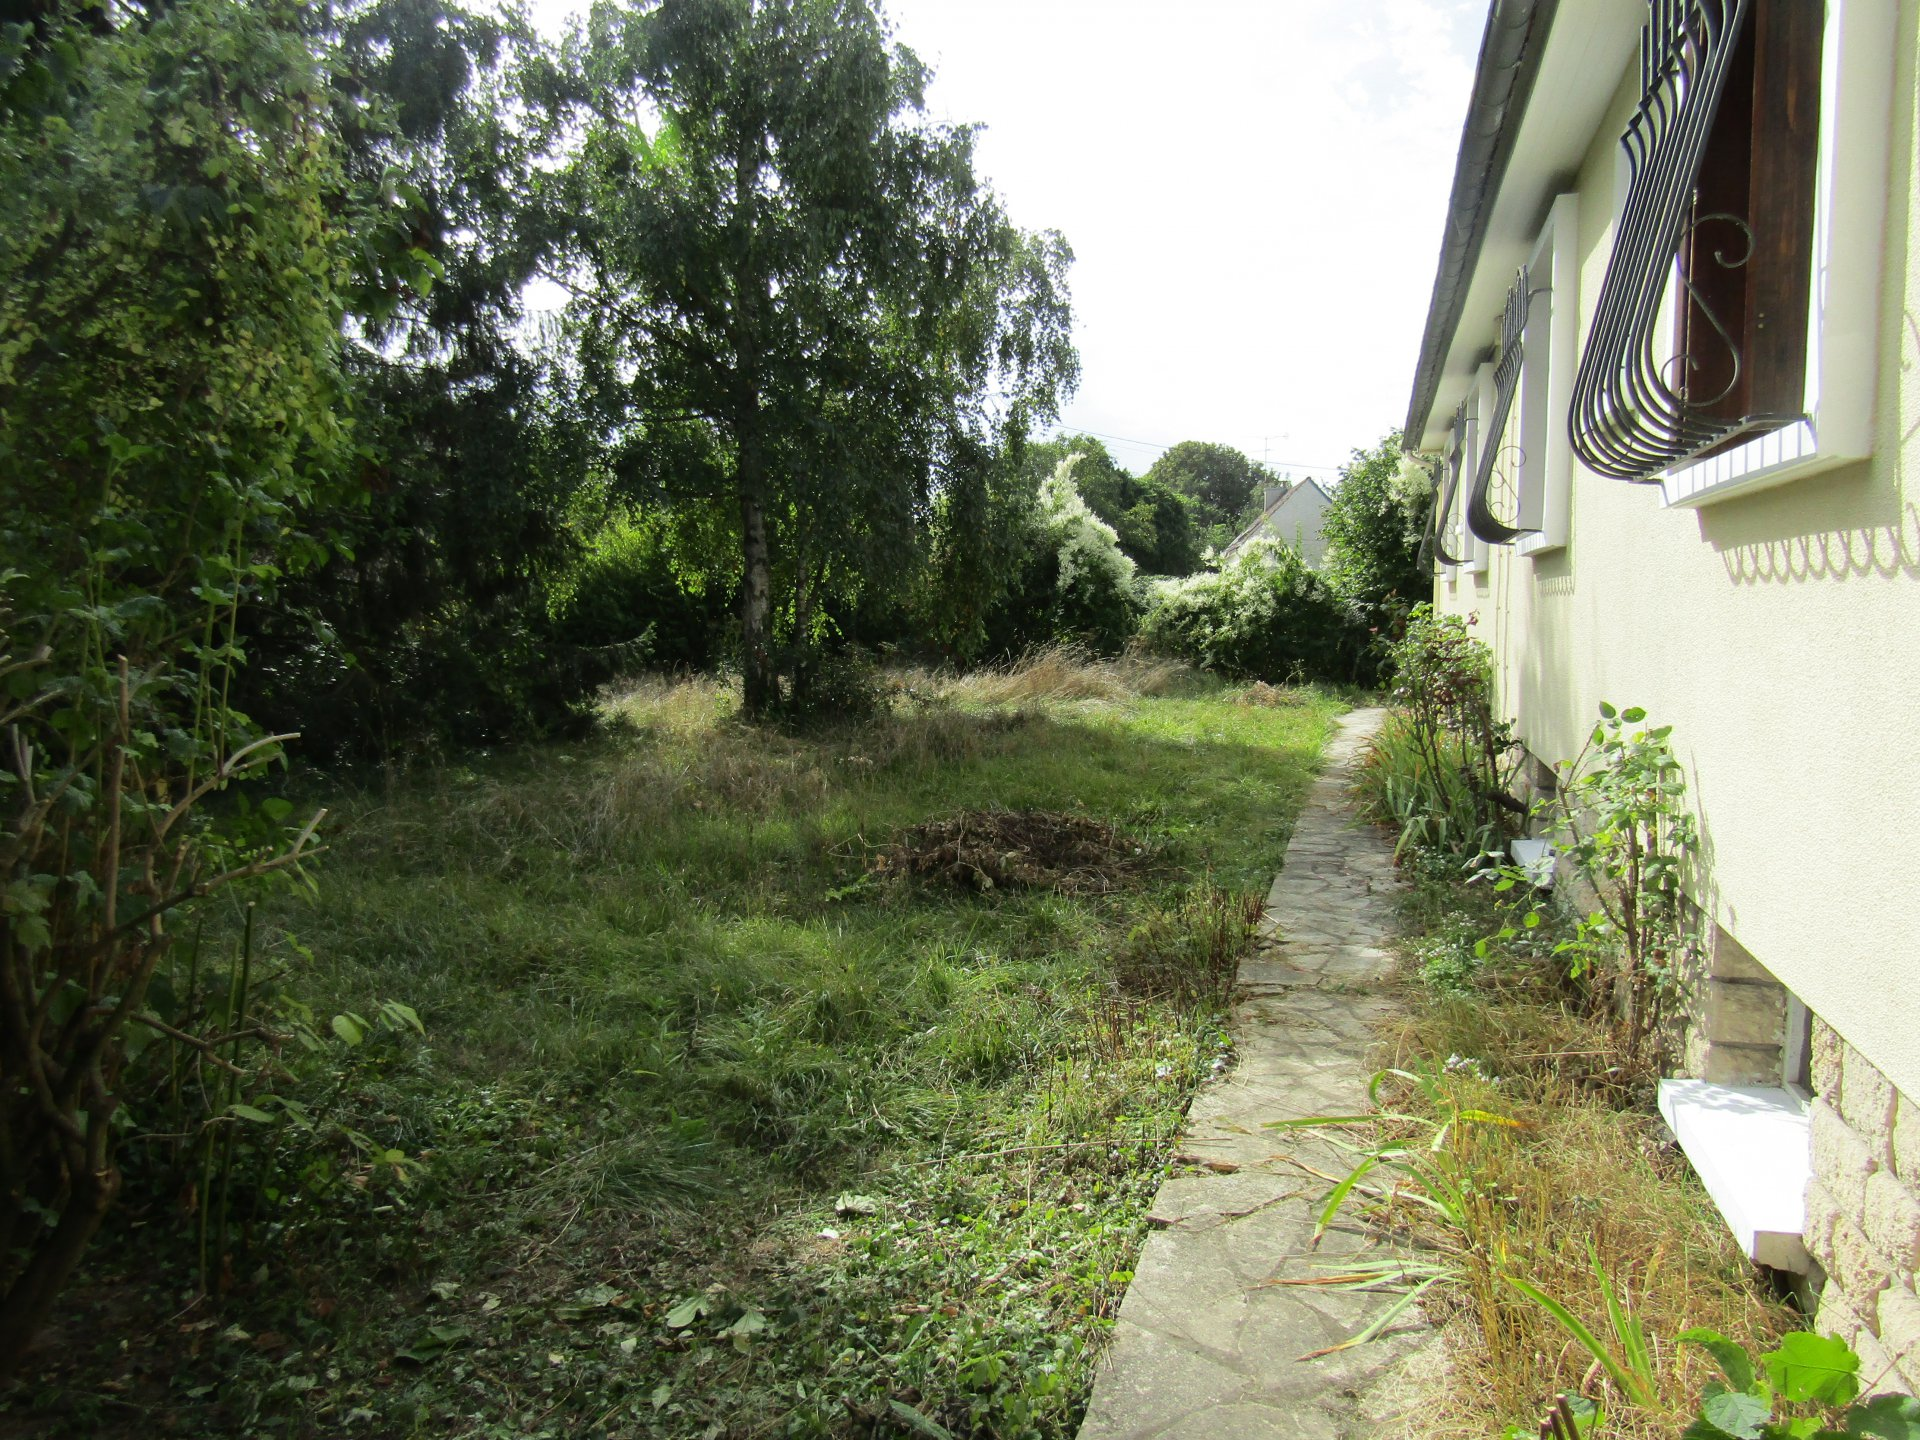 Sale Building land - Champagne Sur Oise